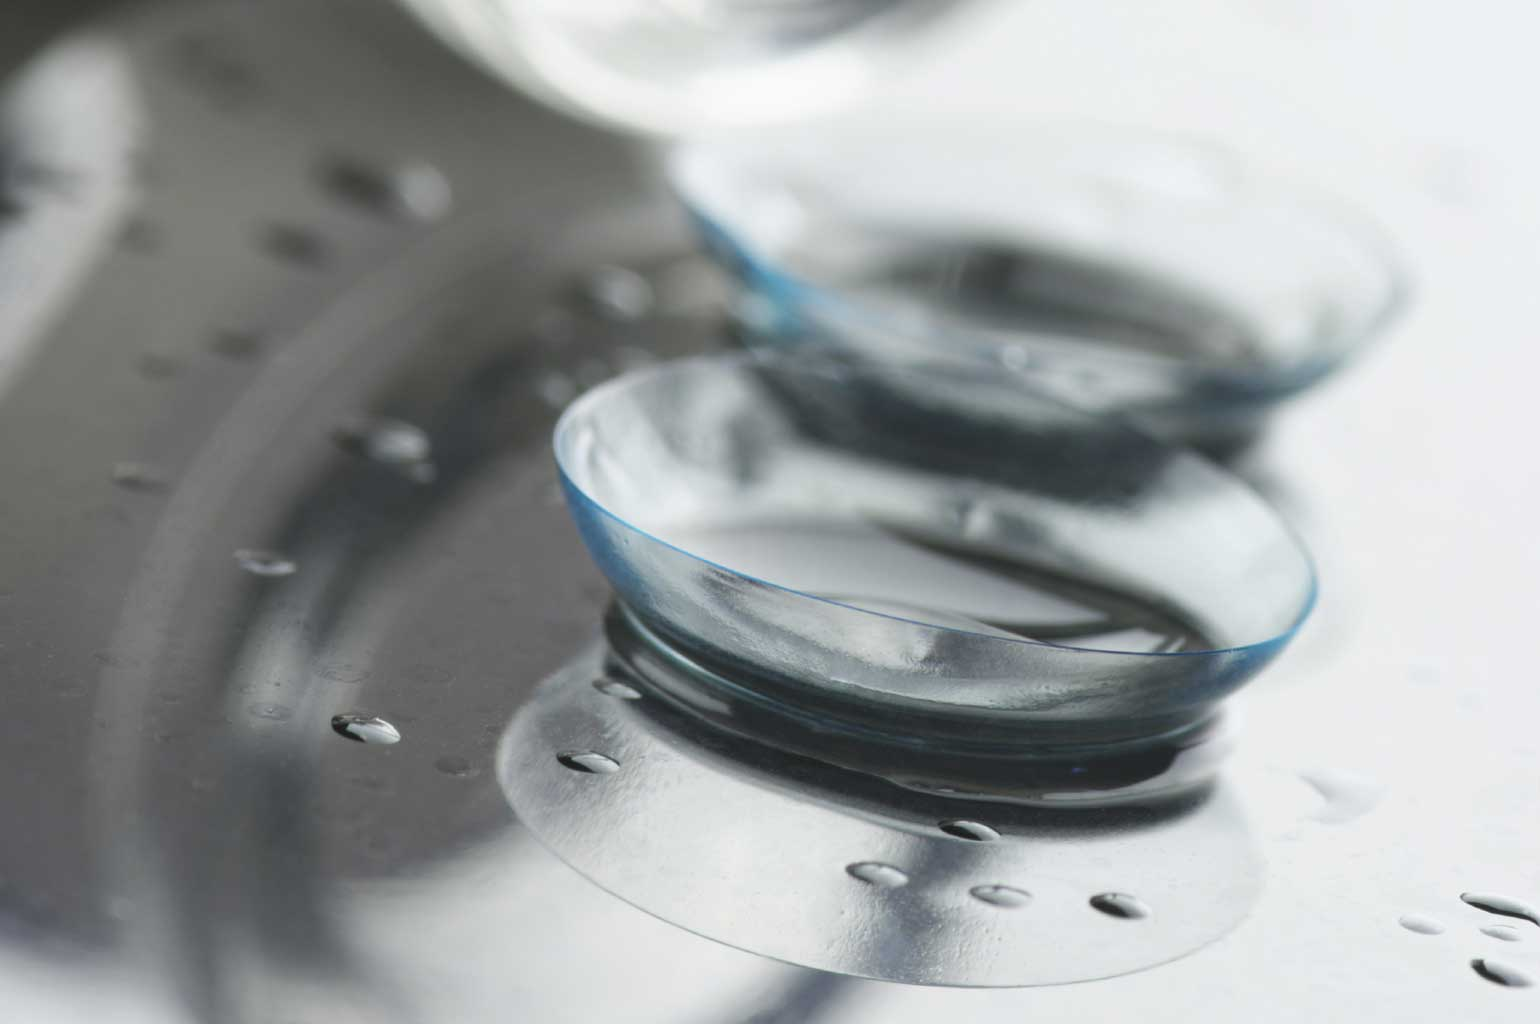 Close up of a contact lense